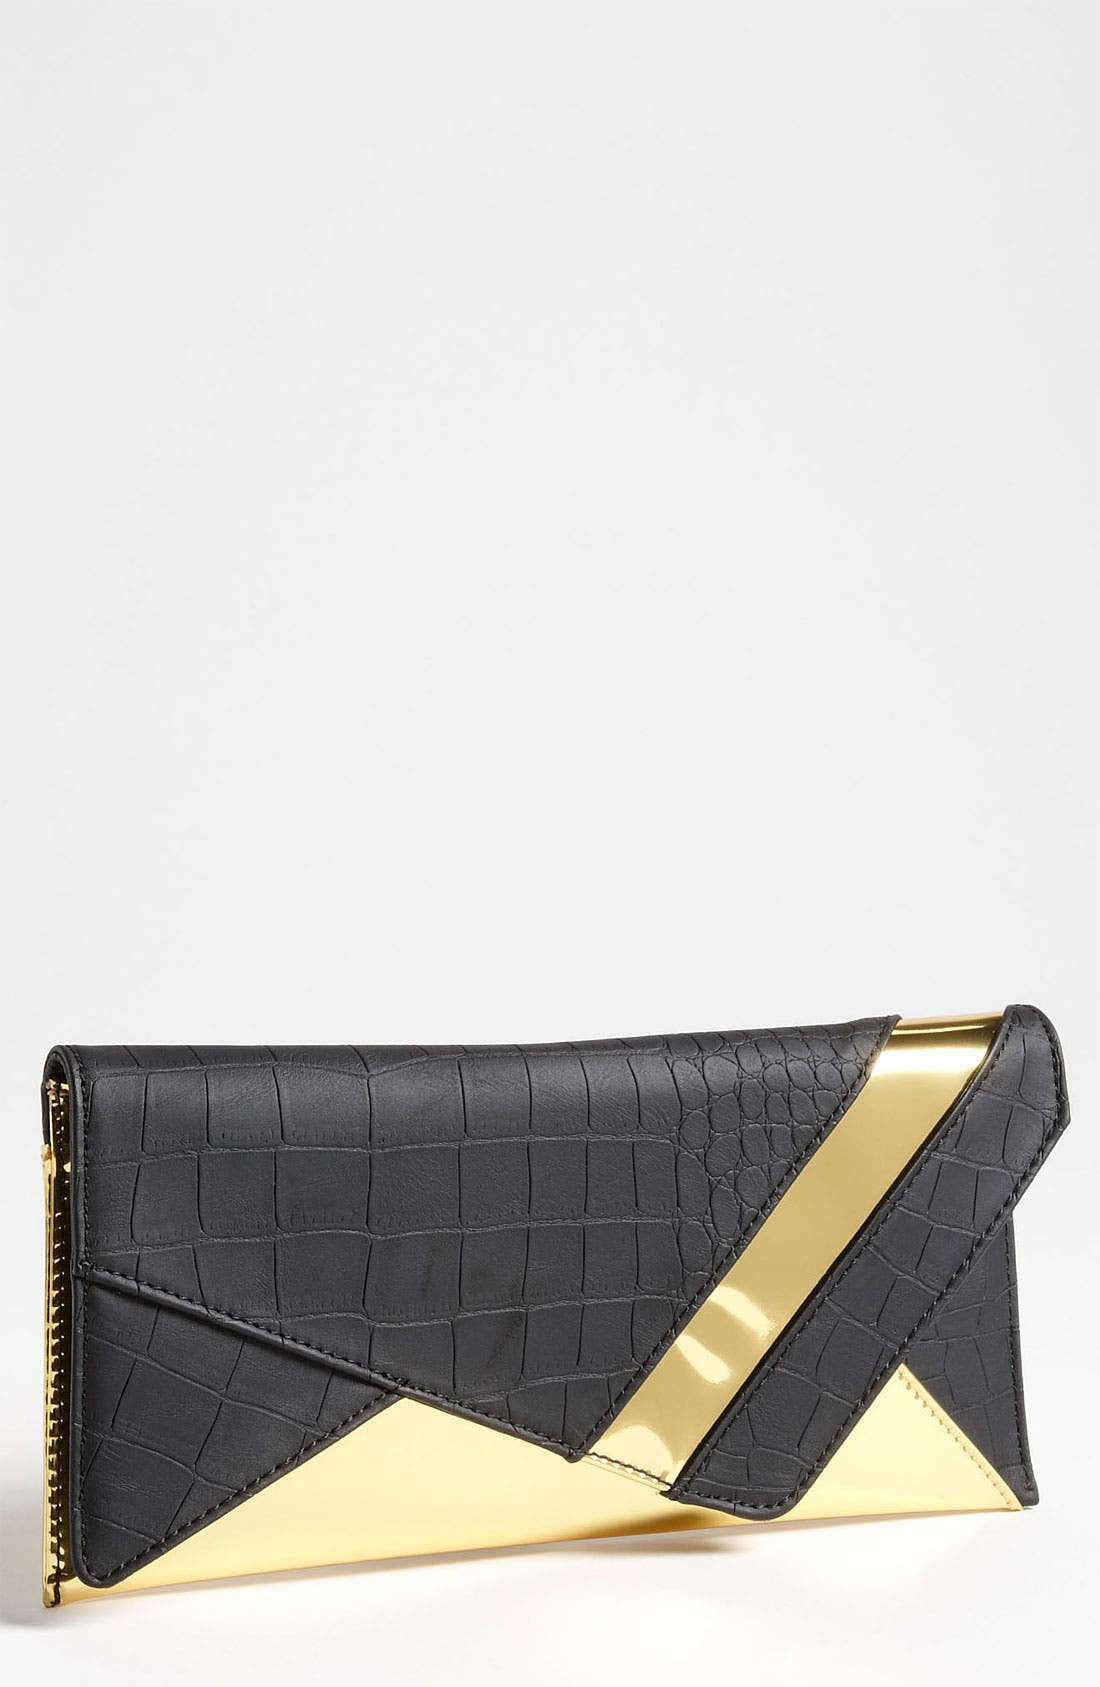 Alternate Image 1 Selected - Danielle Nicole 'Zoe' Clutch